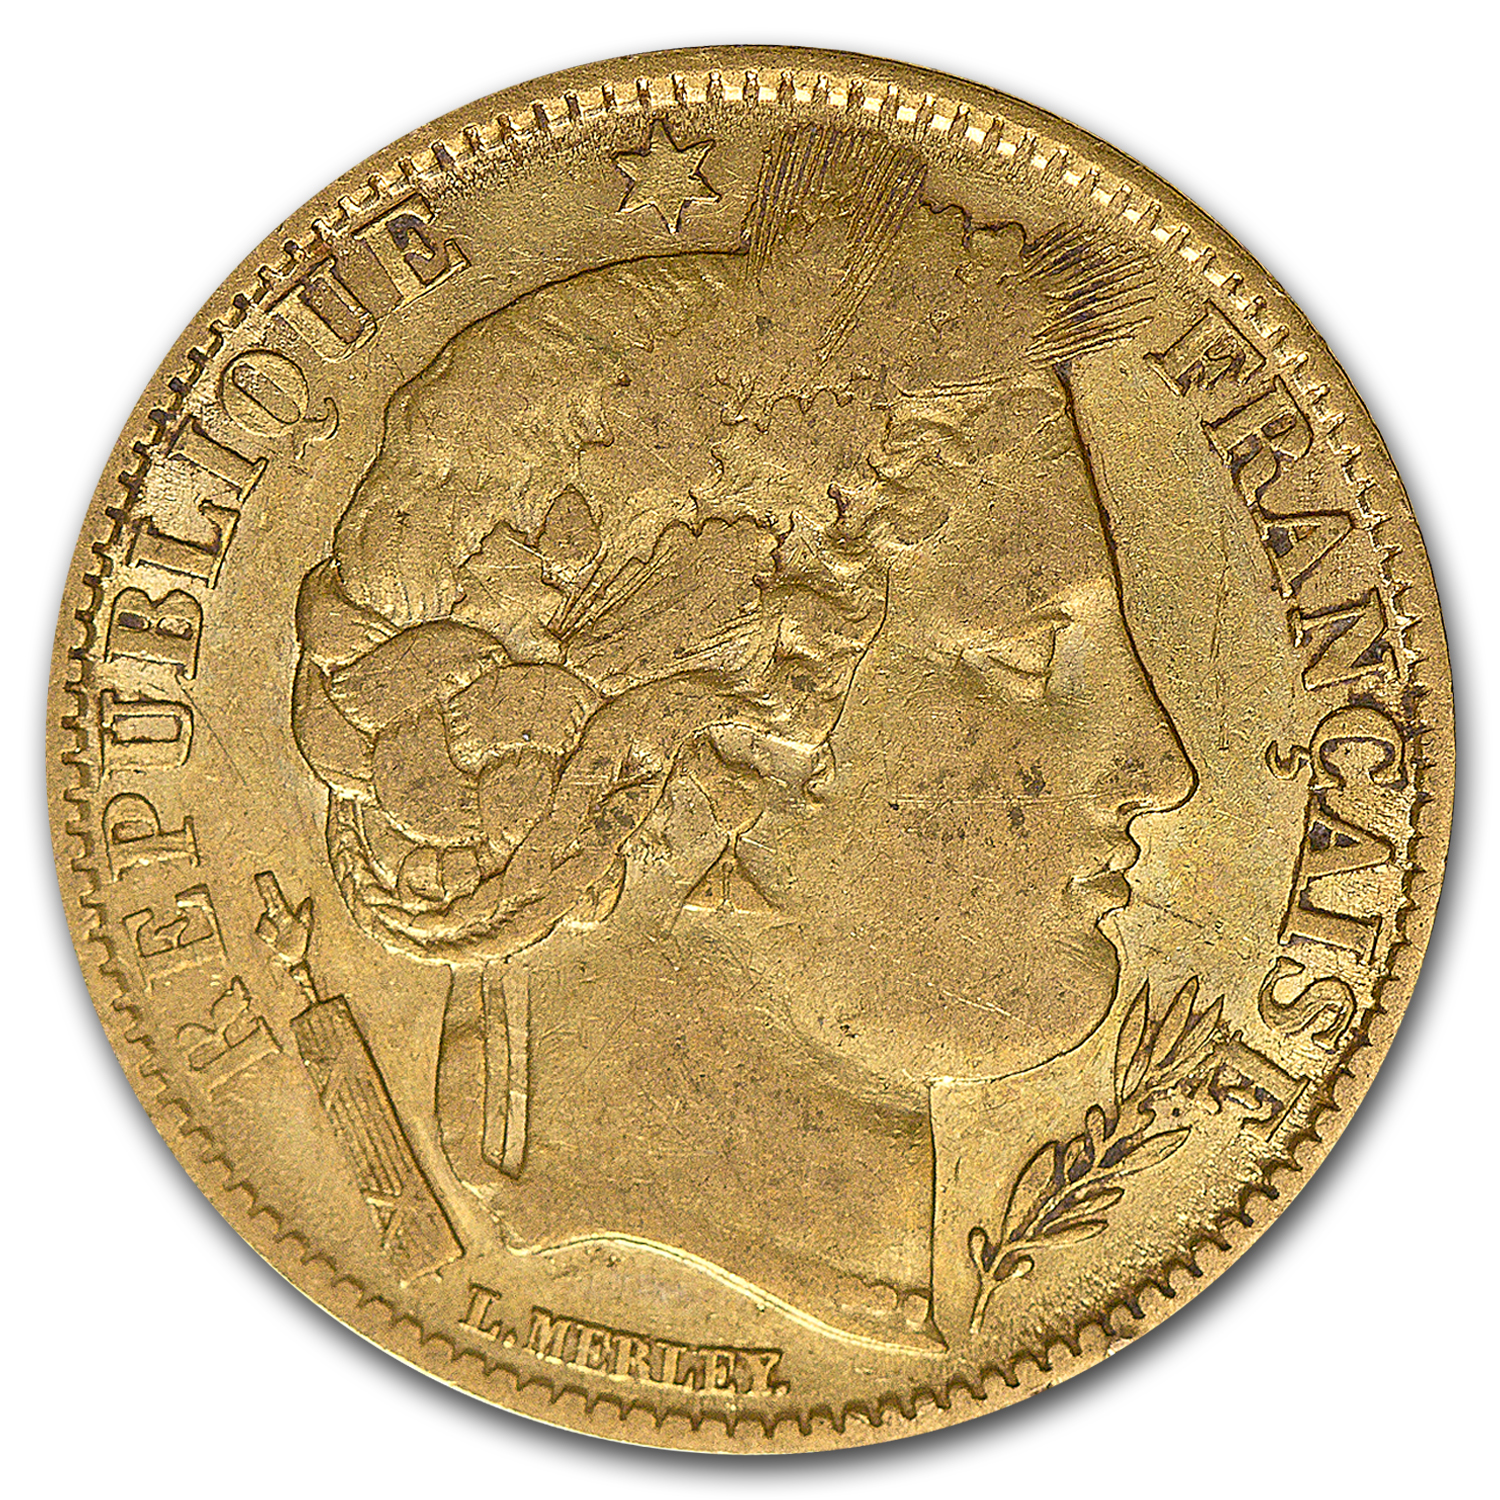 1850-1851 France Gold 10 Francs Ceres Head Average Circ